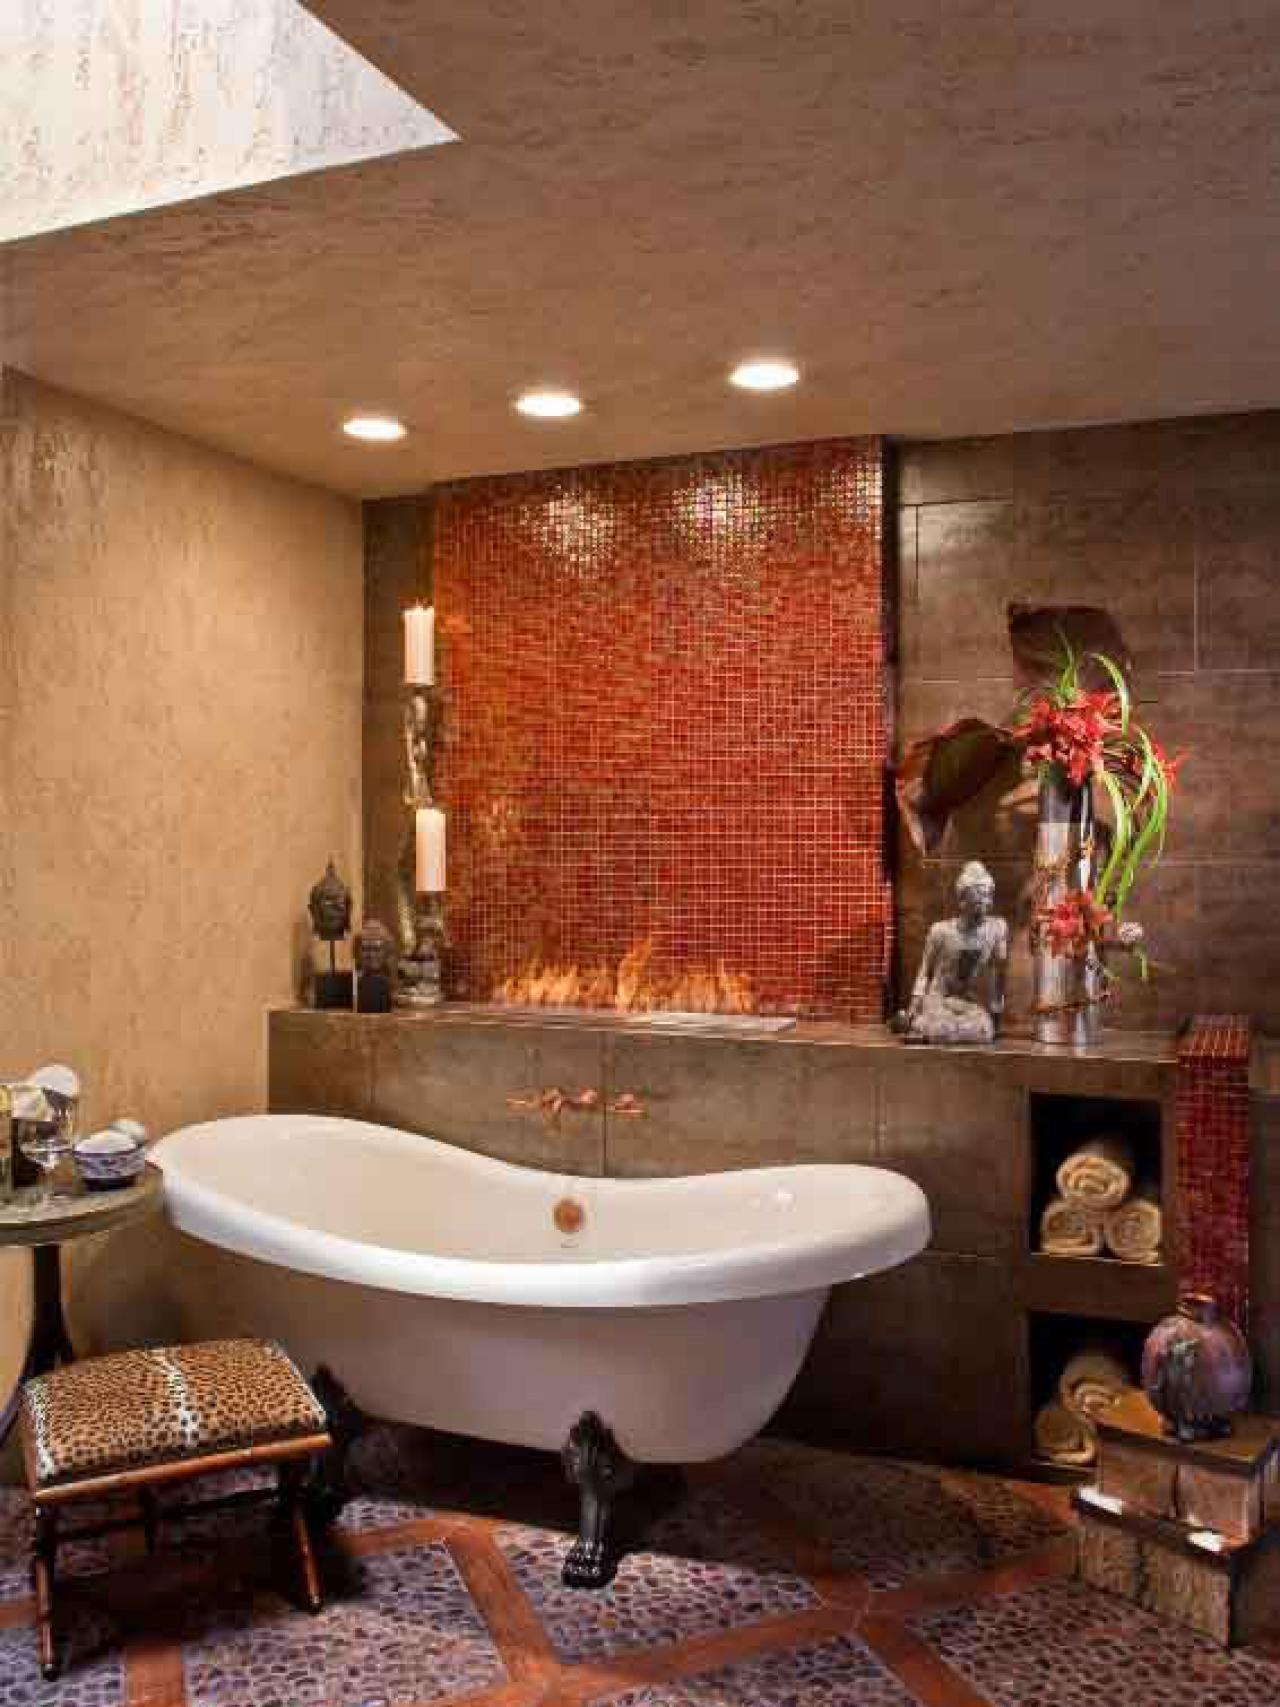 Asian bathroom vanity cabinets - Contemporary Bathroom With Mosaic Tile Wall